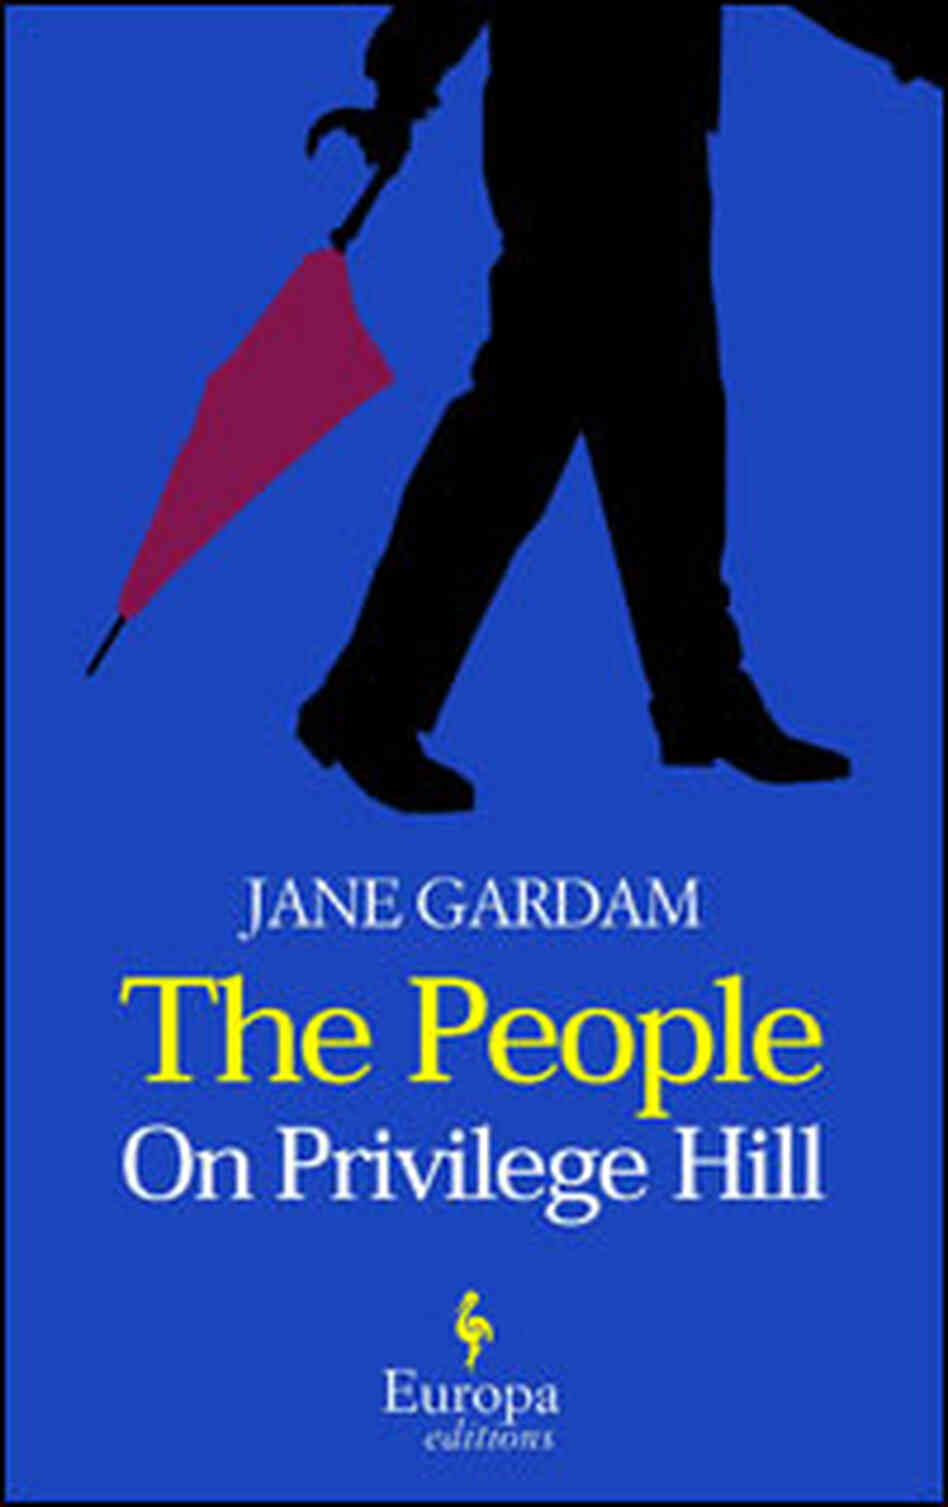 'The People on Privilege Hill'